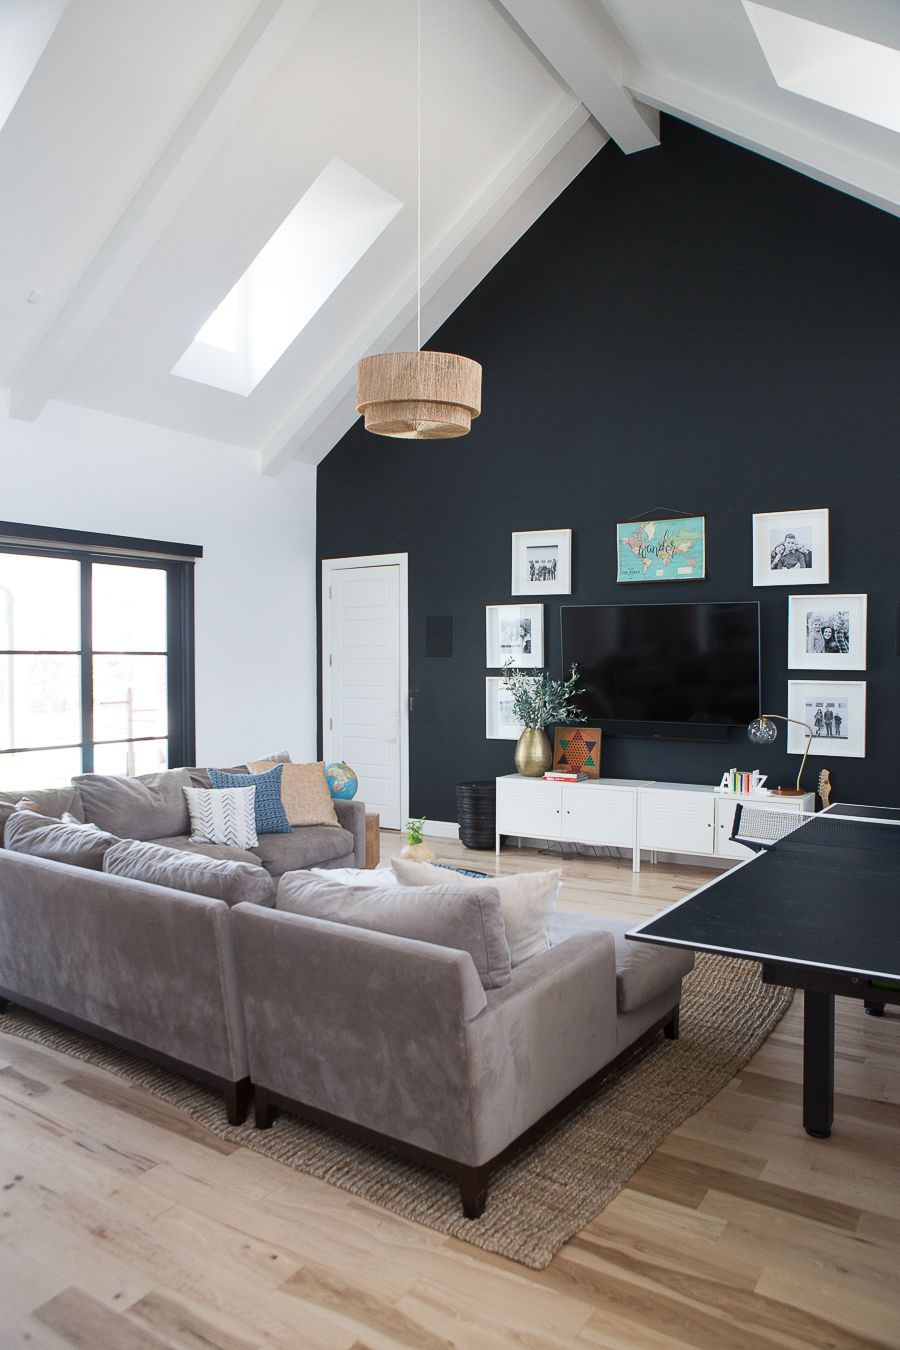 How To Find Black Windows And Doors For Less Ccandmike Game Room Family Black Accent Walls Windows And Doors